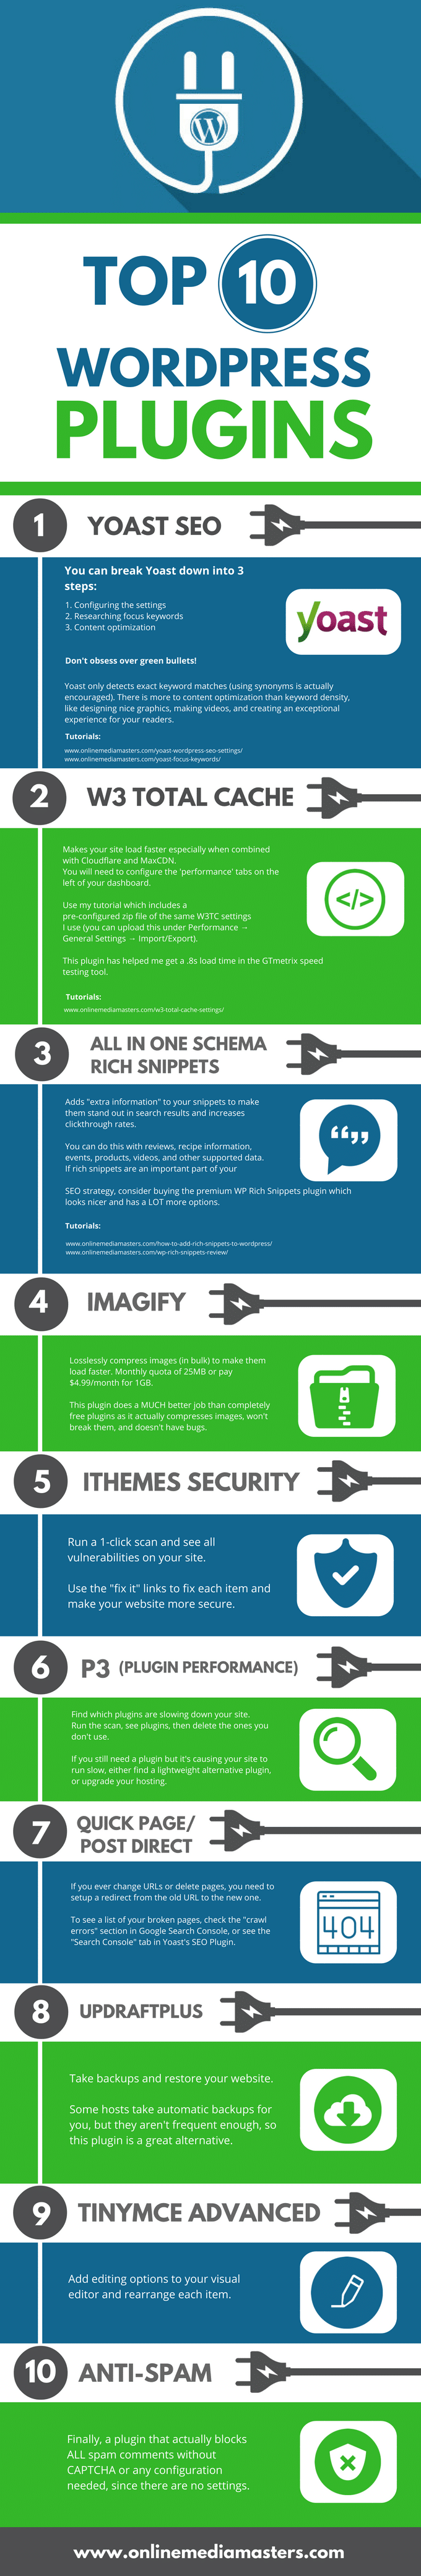 top 10-wordpress-plugins-infographic